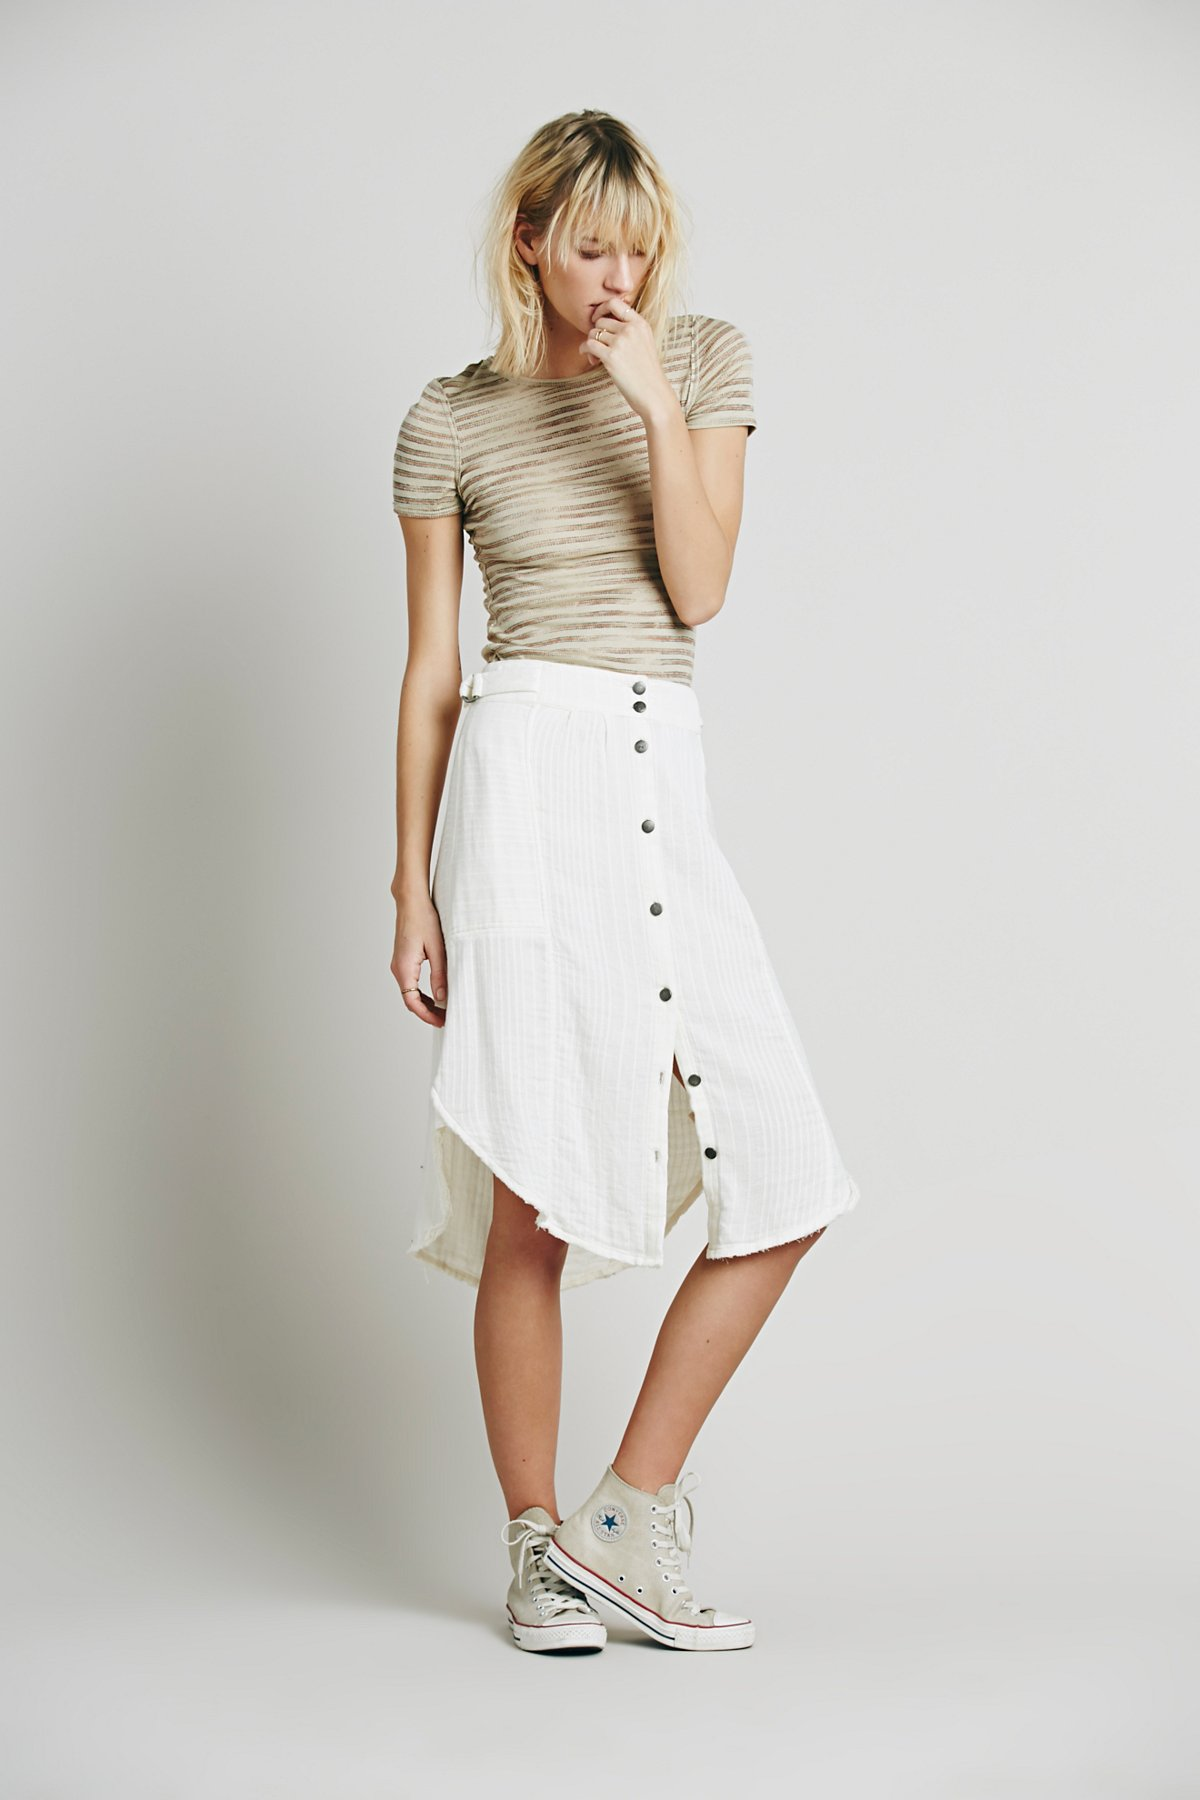 Solid Train of Love Skirt